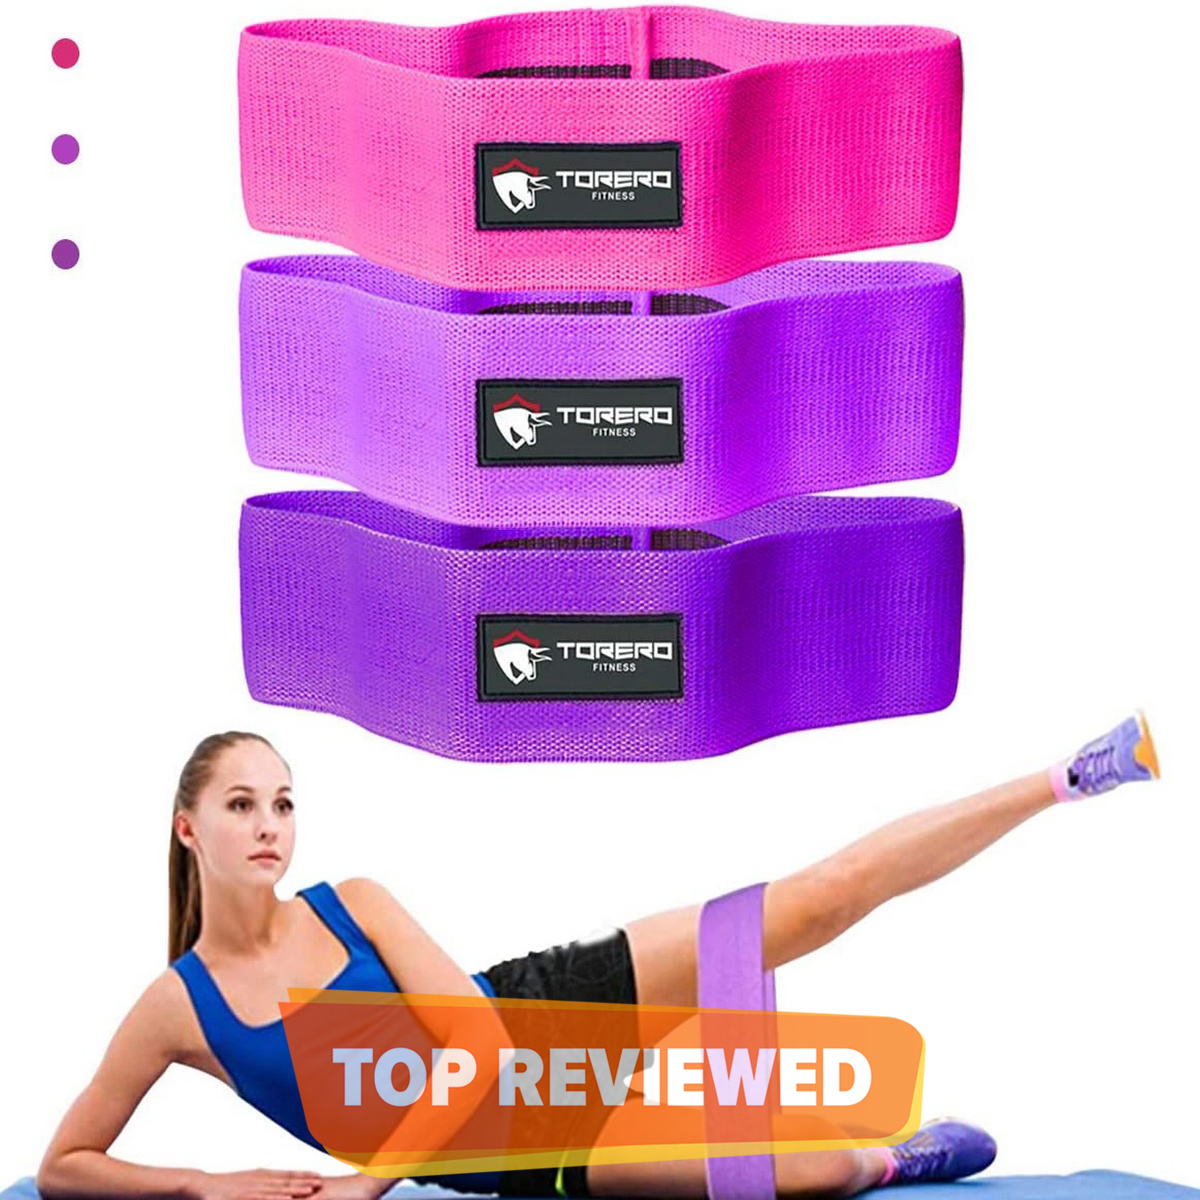 Fabric Resistance Bands- Set of 3 for Glutes, Hips and Legs Exercise, Fitness and Workout   Yoga, Squats, Dead-lifts, Pilates, Cross-fit, Physiotherapy and Recovery   Men & Women